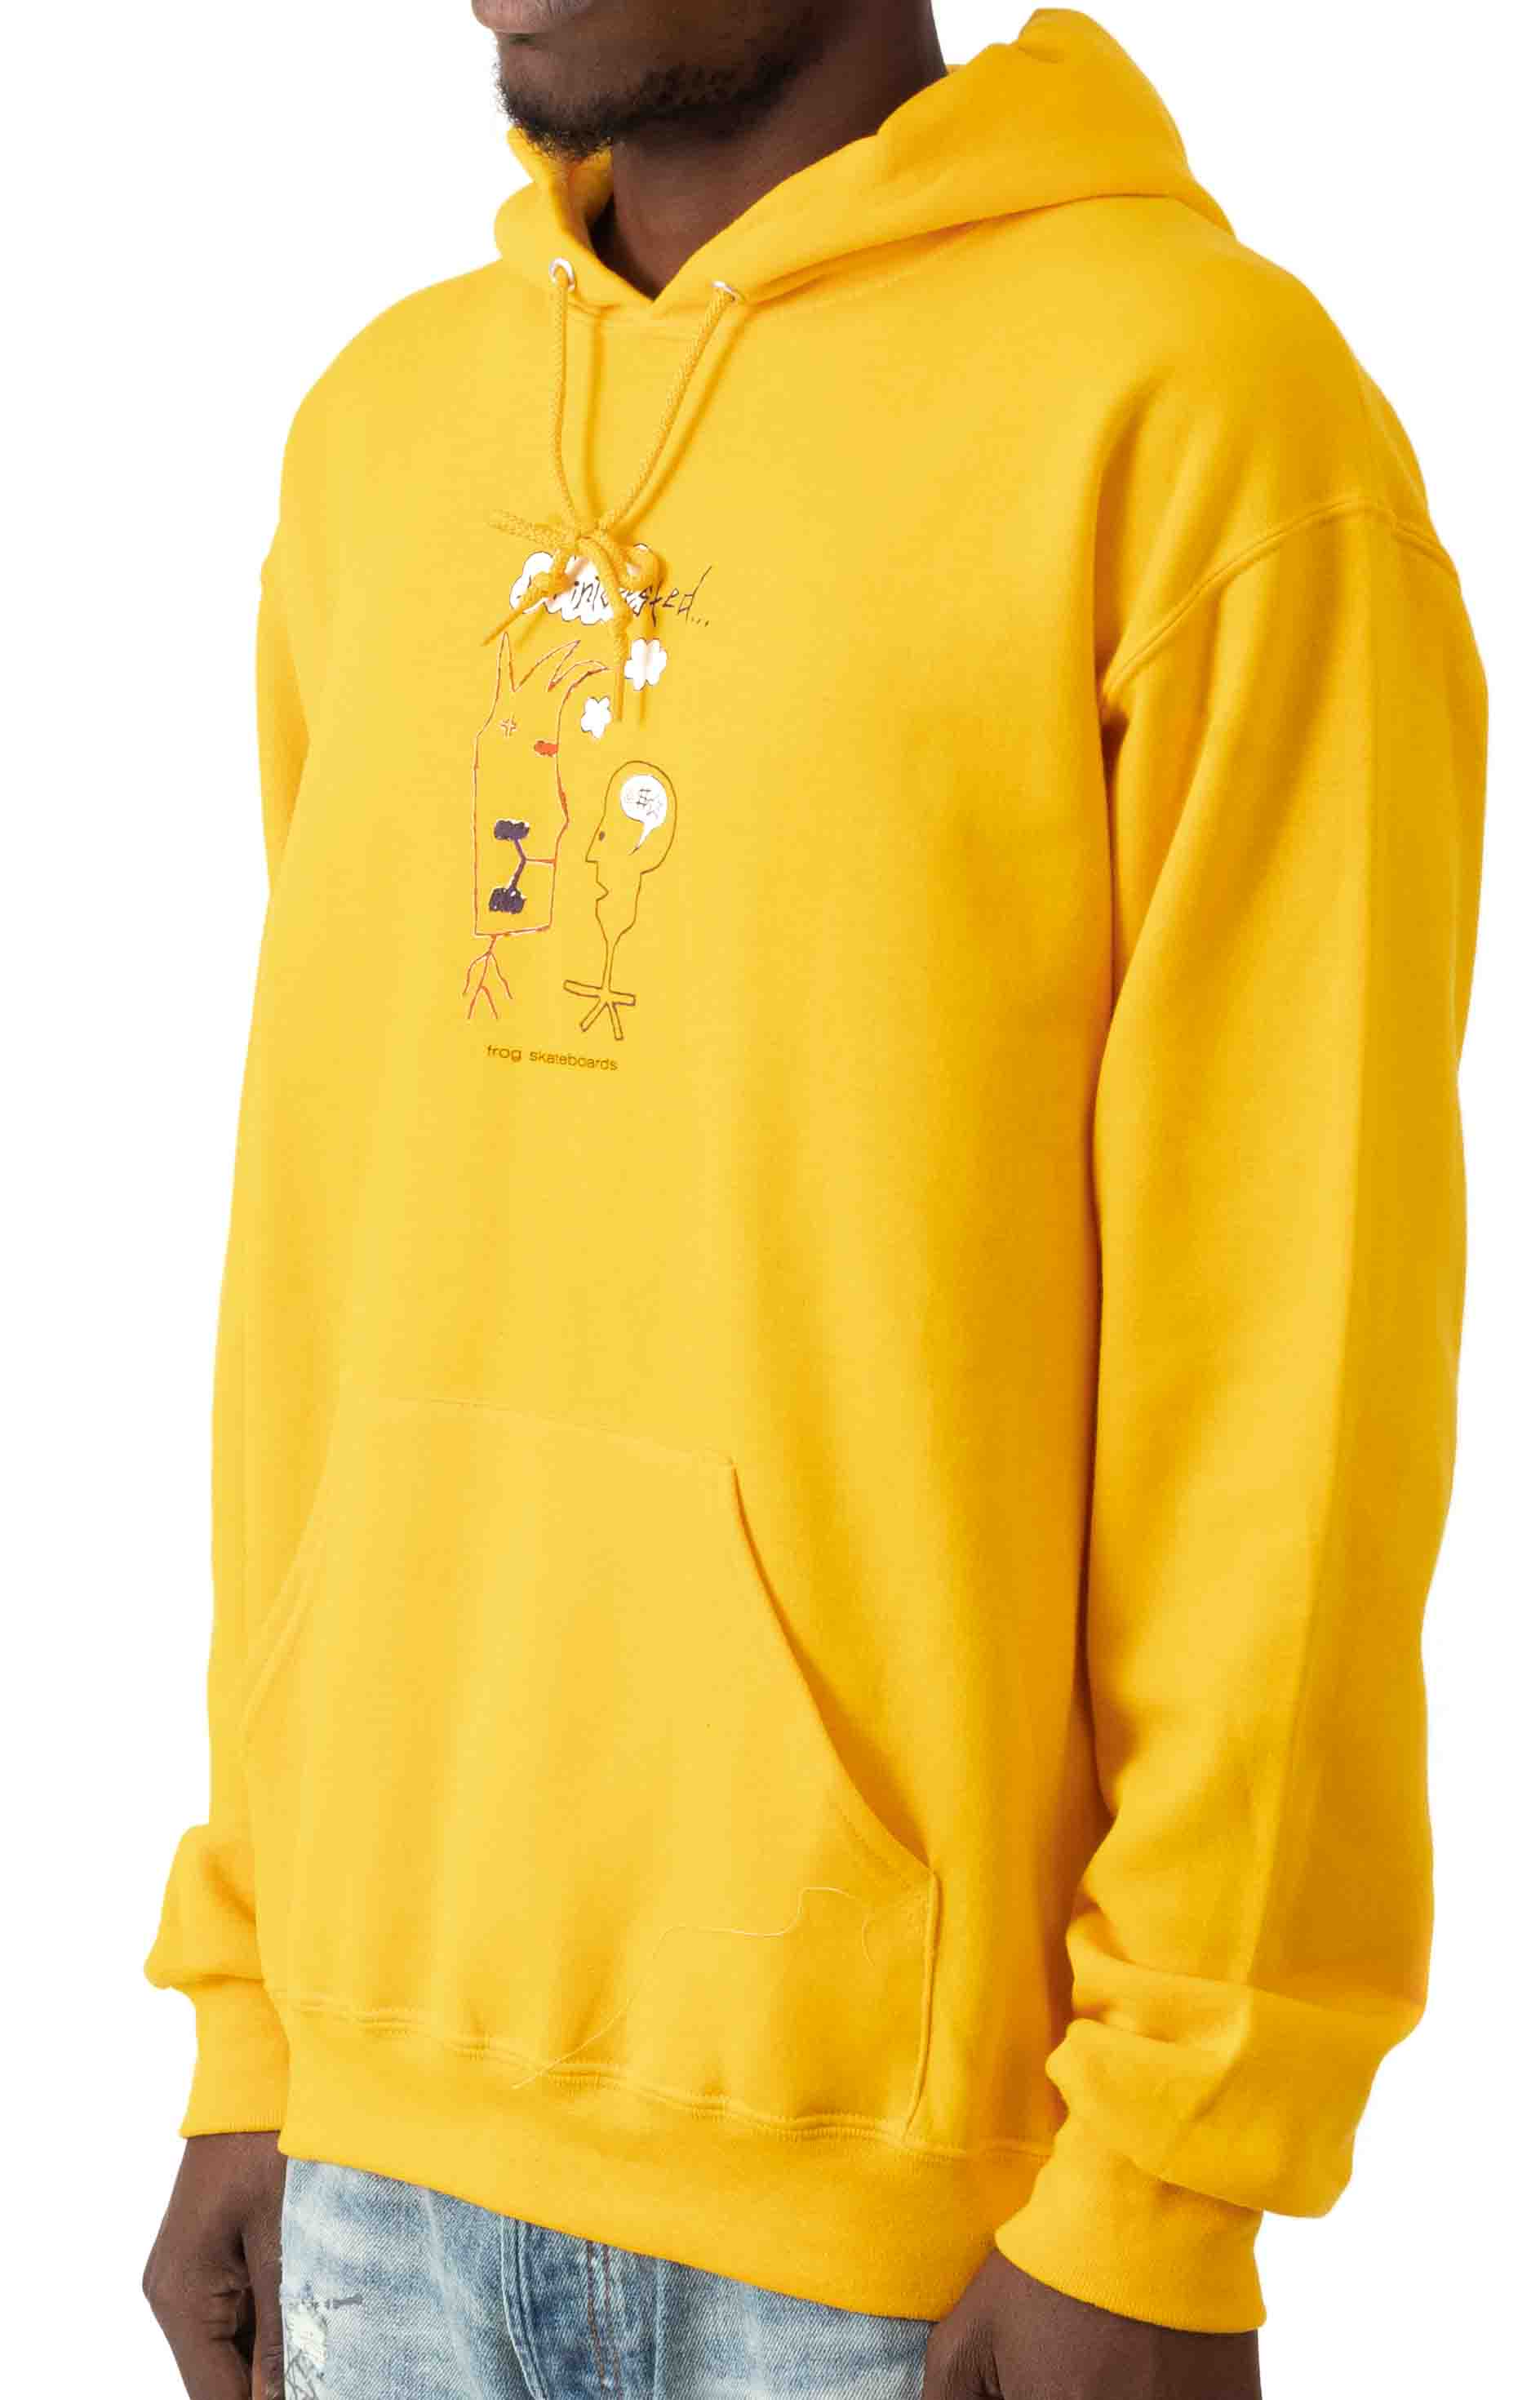 Not Interested Pullover Hoodie - Gold  2